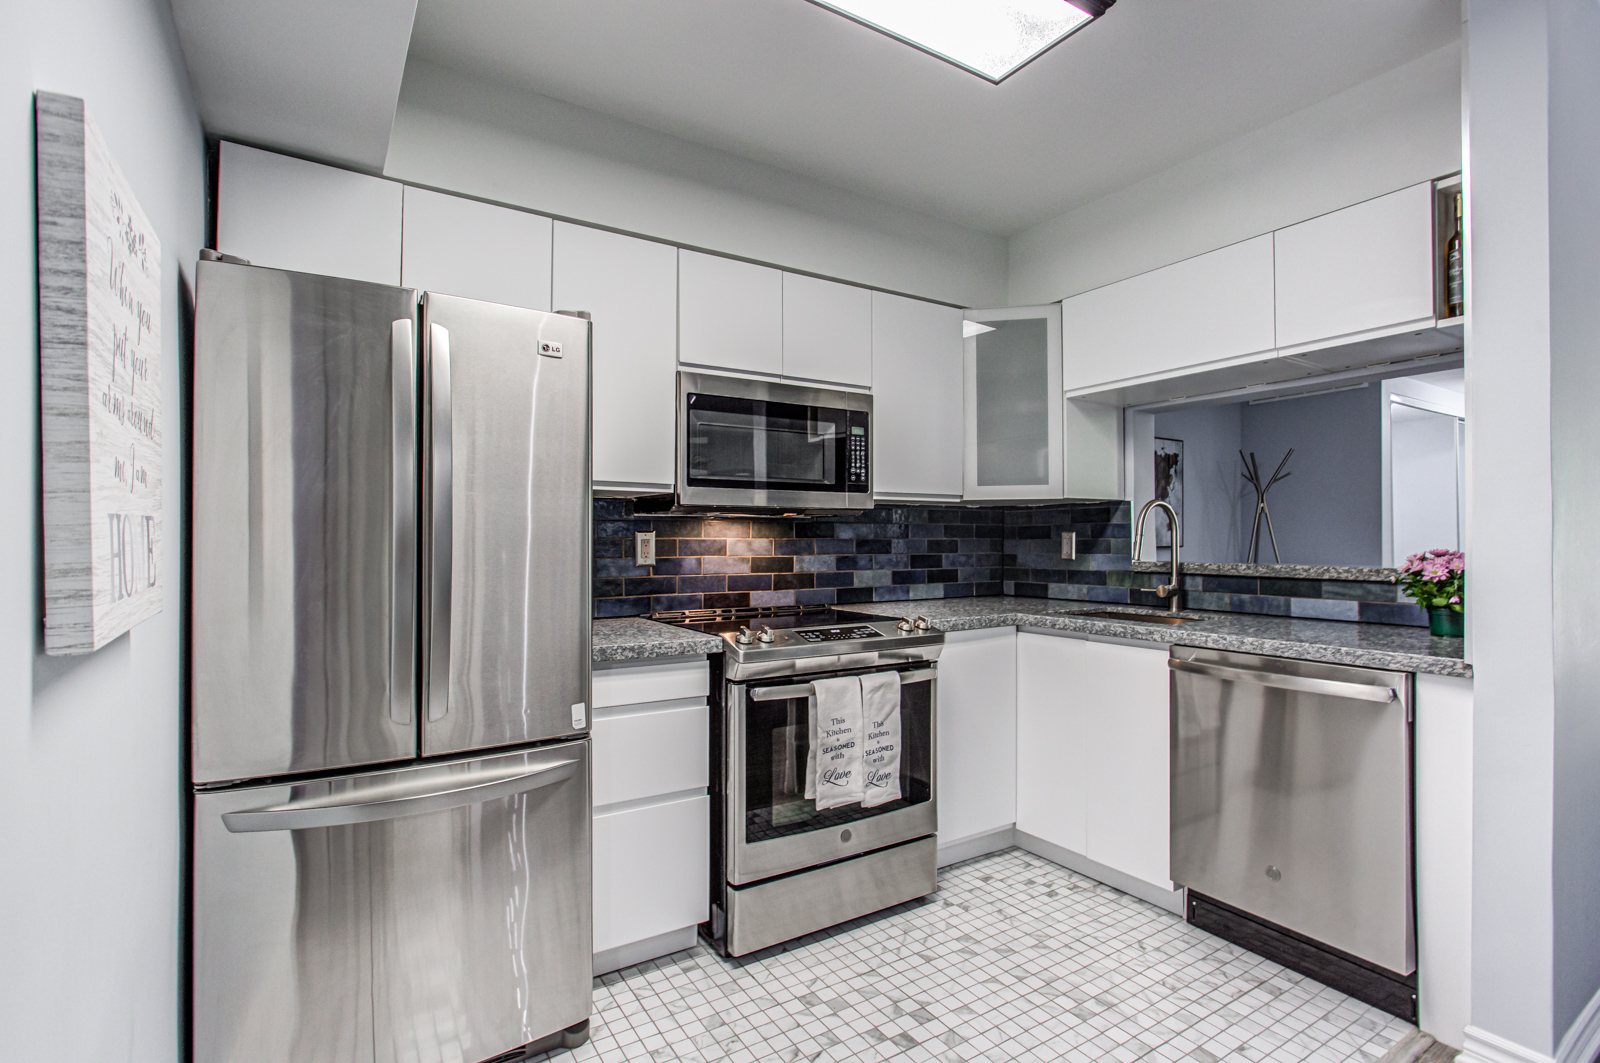 5 Everson Dr kitchen with gray cabinets, dark blue brick back-splash, and marble floor tiles.